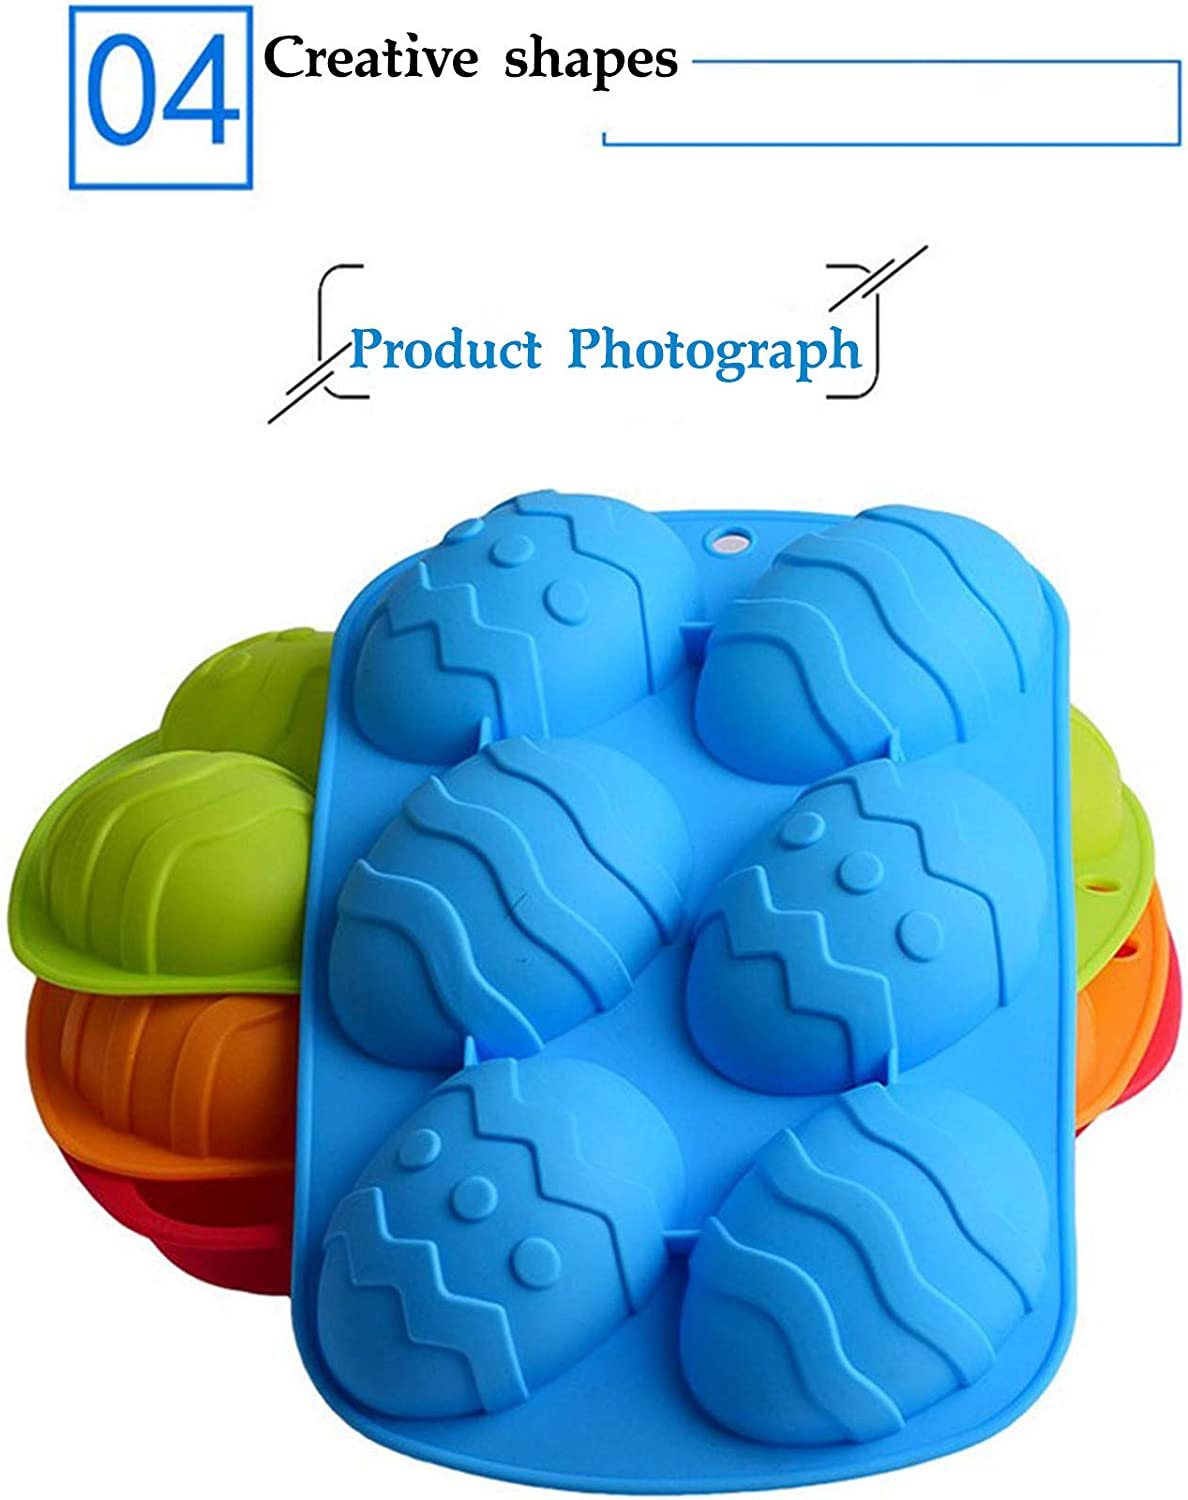 4-colors Soap Shape Jelly Mould Silicone Egg Mold 3D Chocolate Cake Mold Multicolor Dinosaur Egg Giant Ostrich Egg Chocolate Mold Fondant Mould Baking Sugar Craft Decorating Mold Tool Kitchen